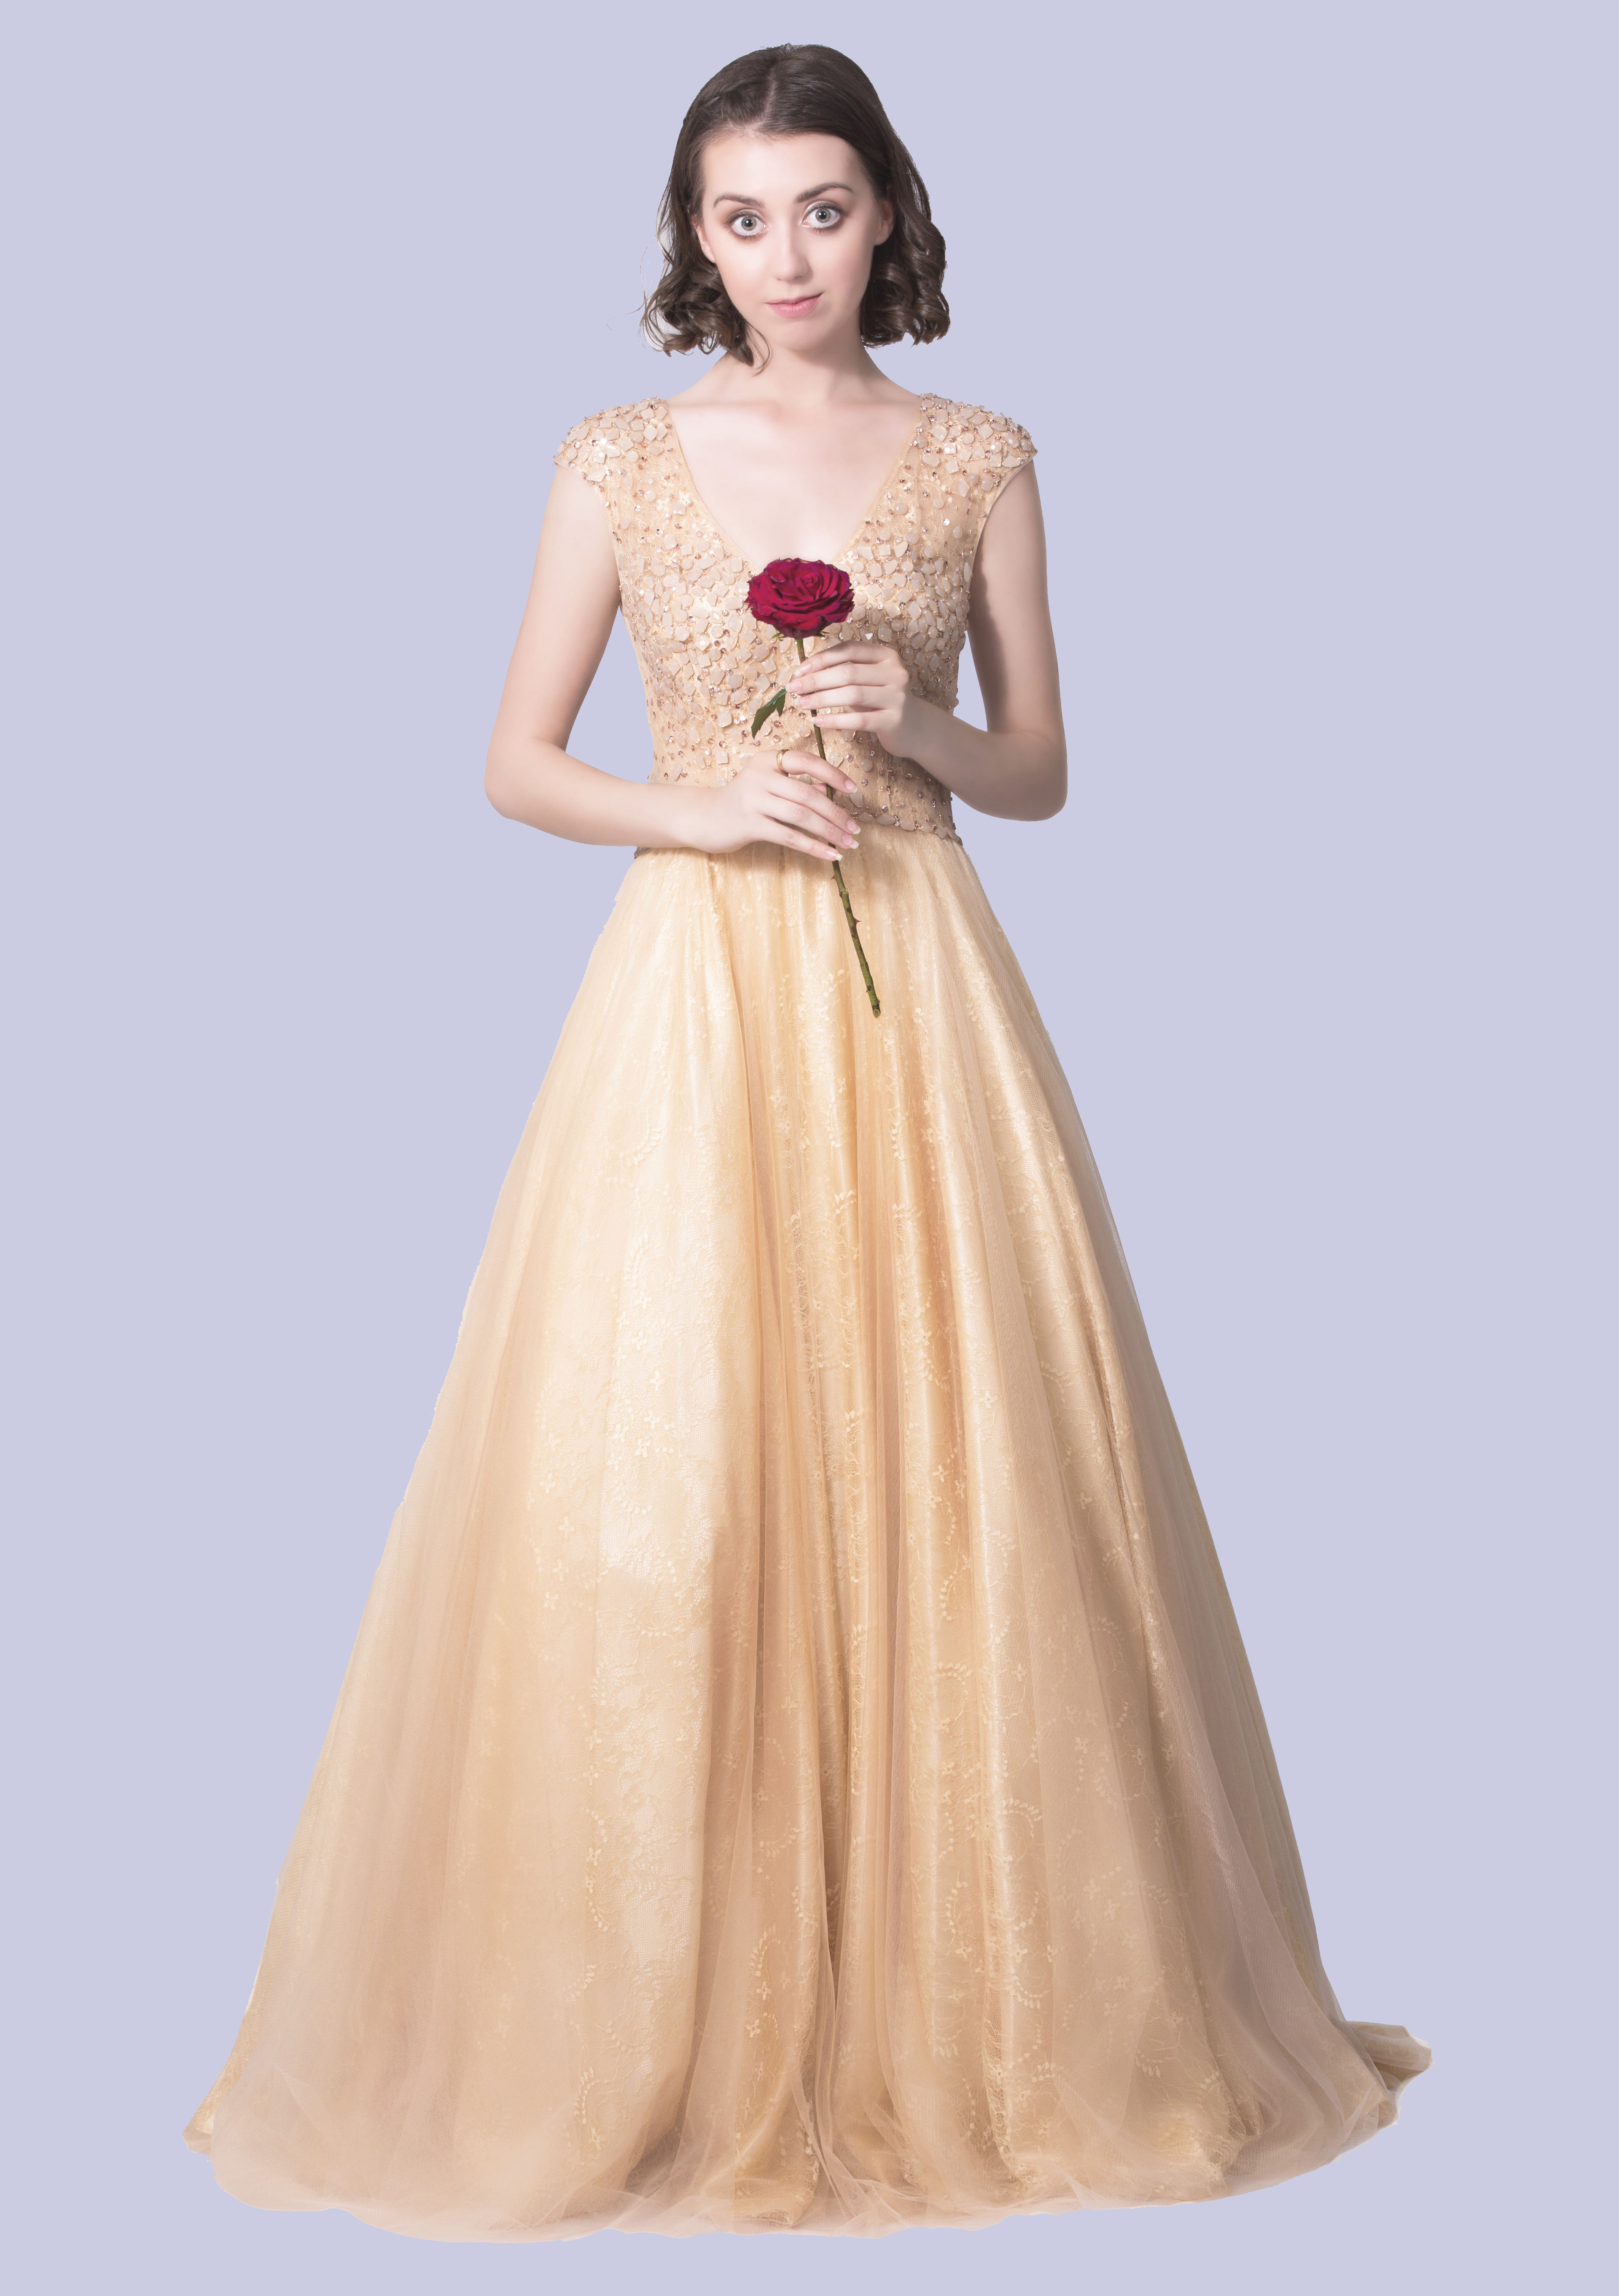 ddb58c72342ed8 Belle - June Peony Bridal Couture